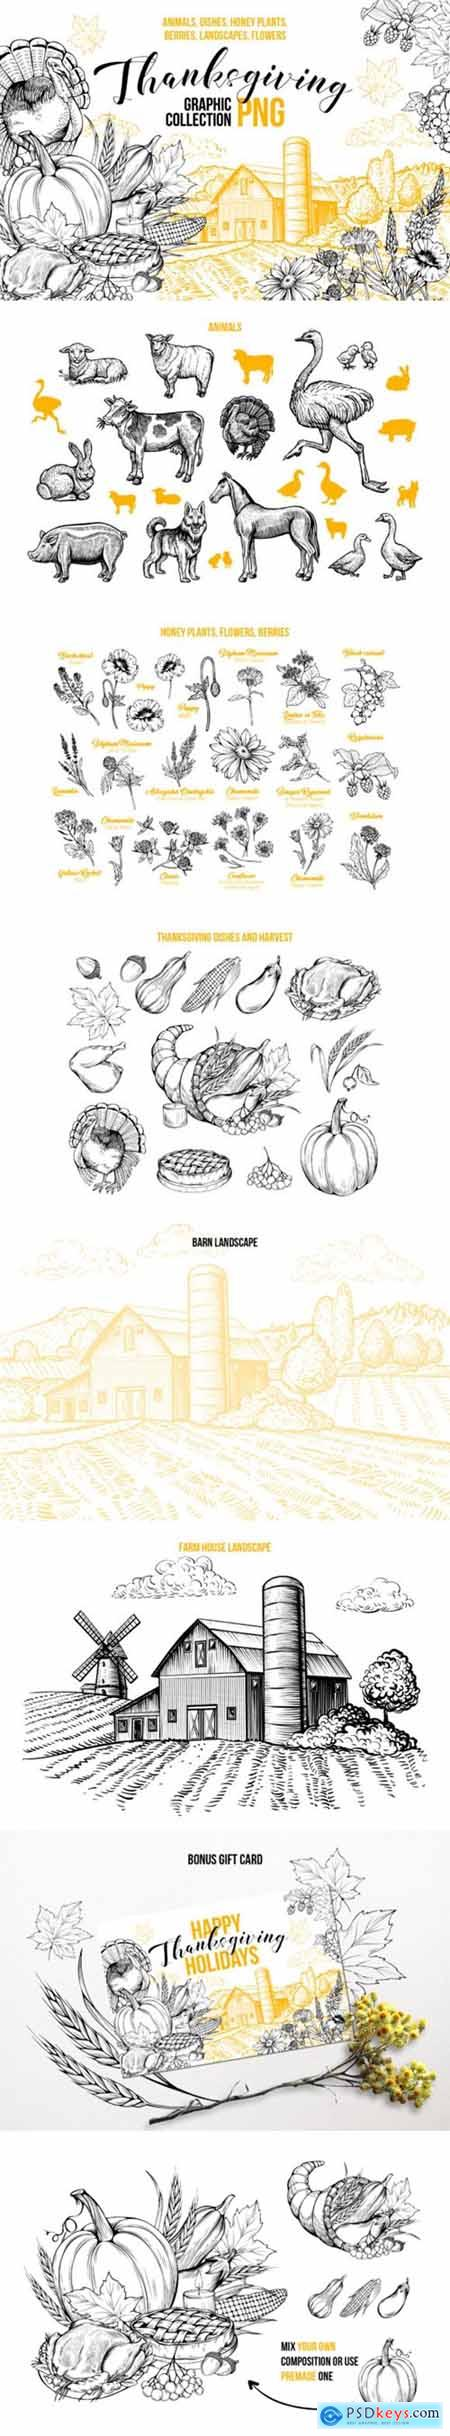 Thanksgiving Graphics Collection 1738200